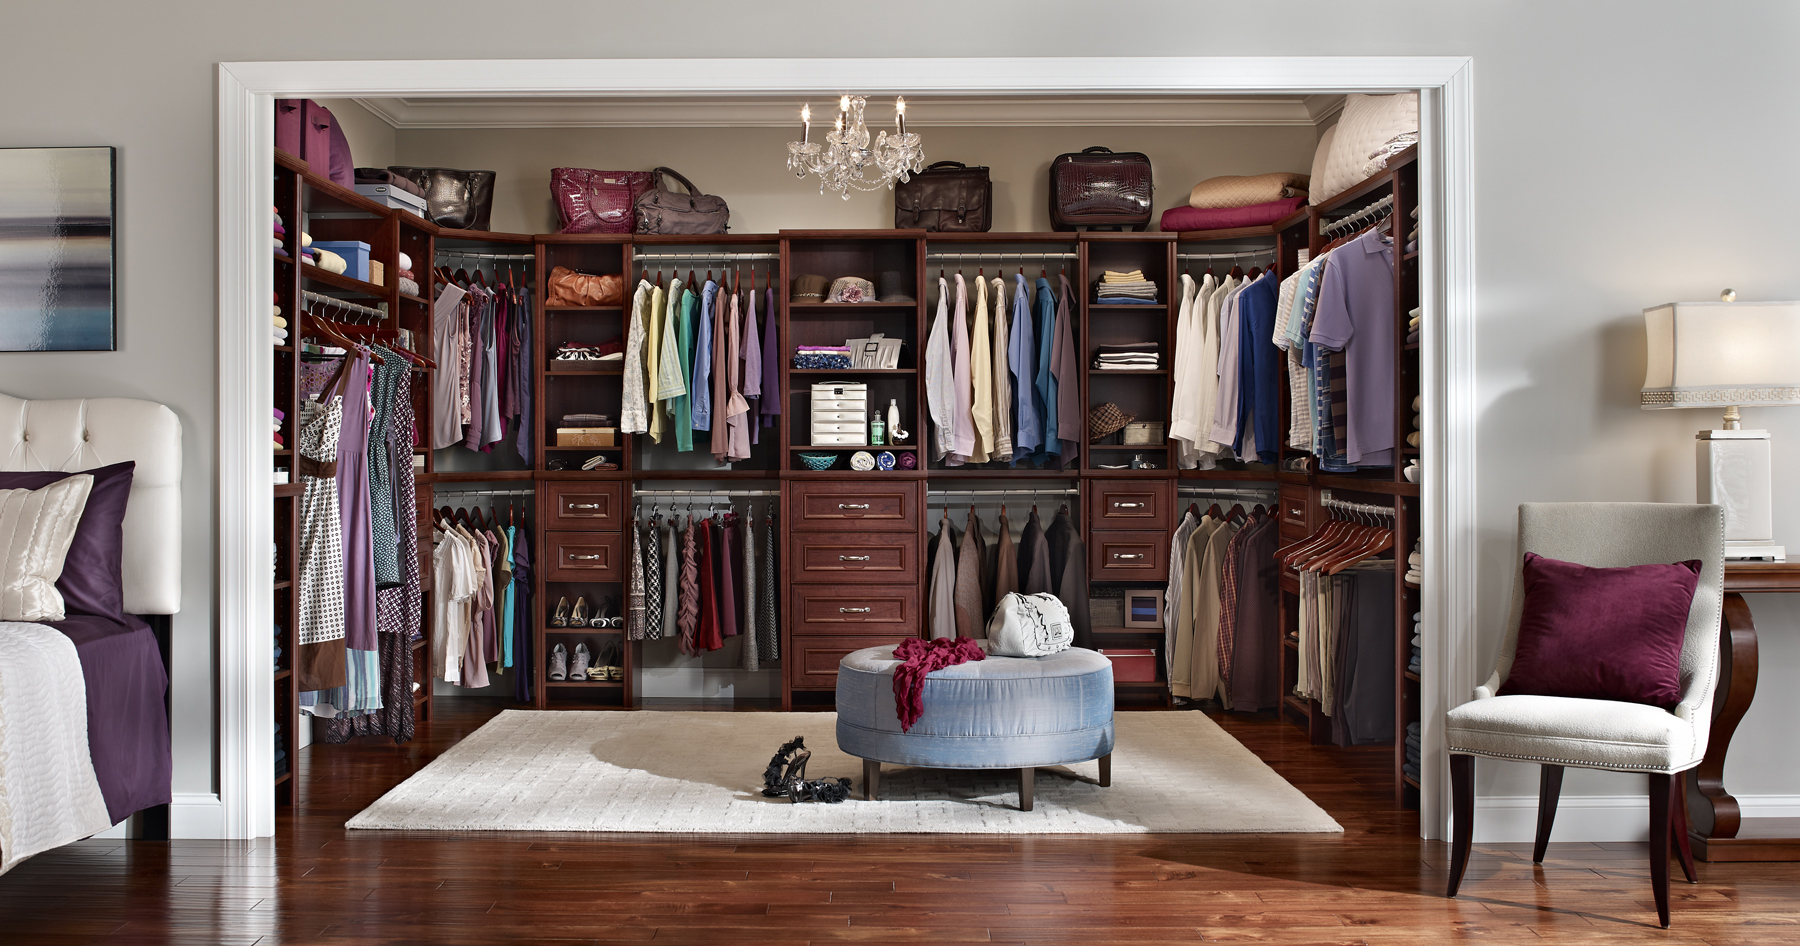 Master Bedroom Closet With ClosetMaid Impressions, The New DIY Laminate Storage  System, In Dark